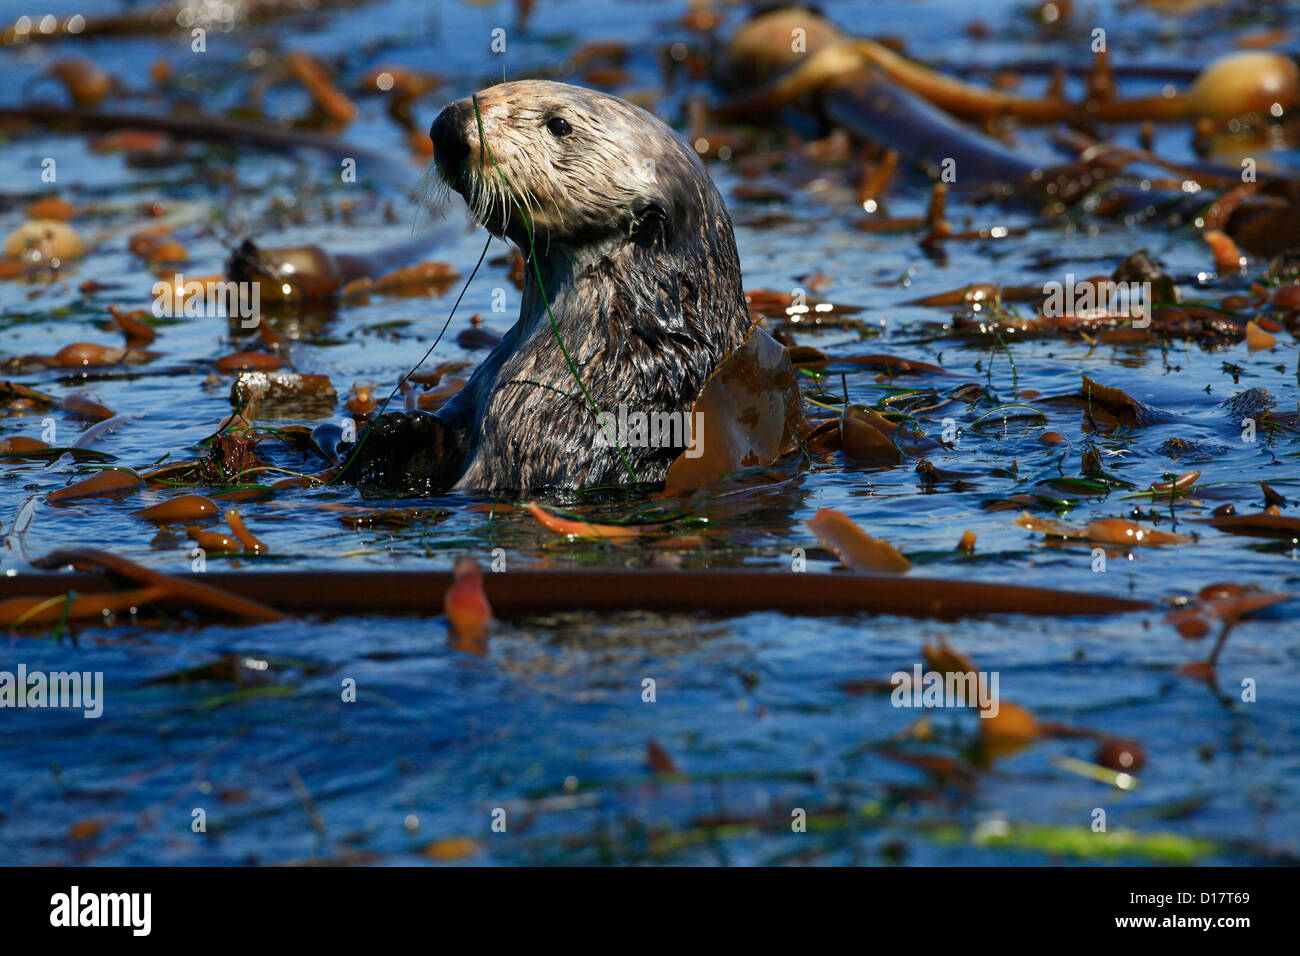 A southern sea otter (Enhydra lutris nereis) in Elkhorn Slough, California. - Stock Image